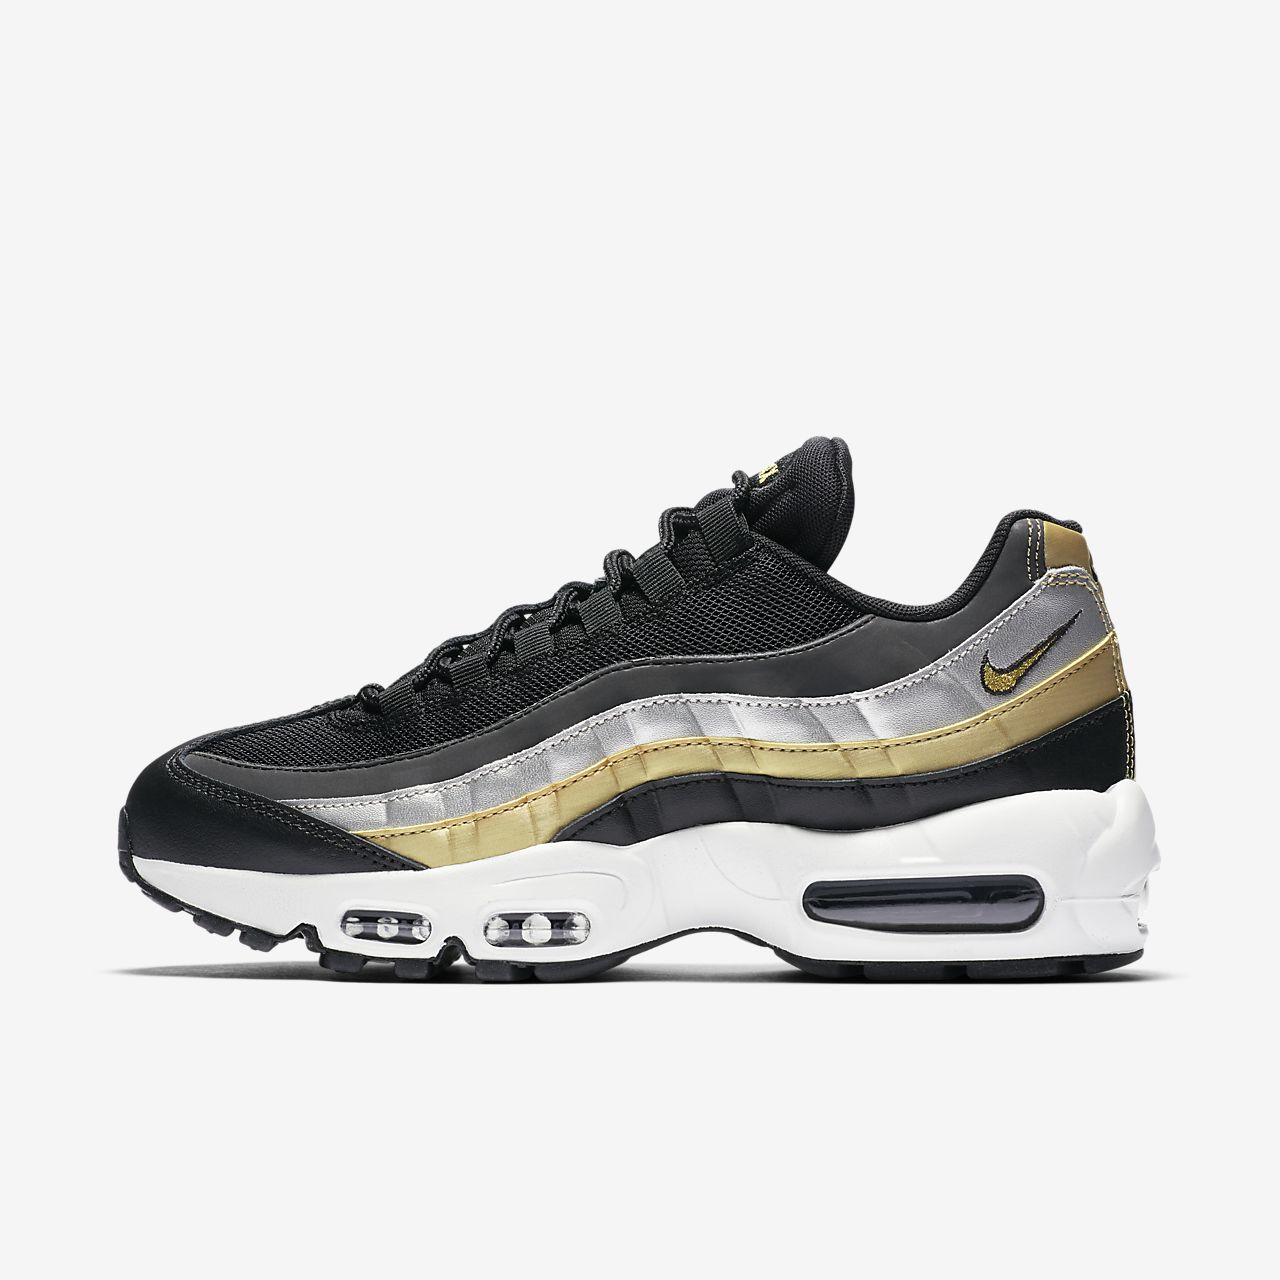 a4920145d81 Nike Air Max 95 Lux Metallic Damesschoen. Nike.com BE